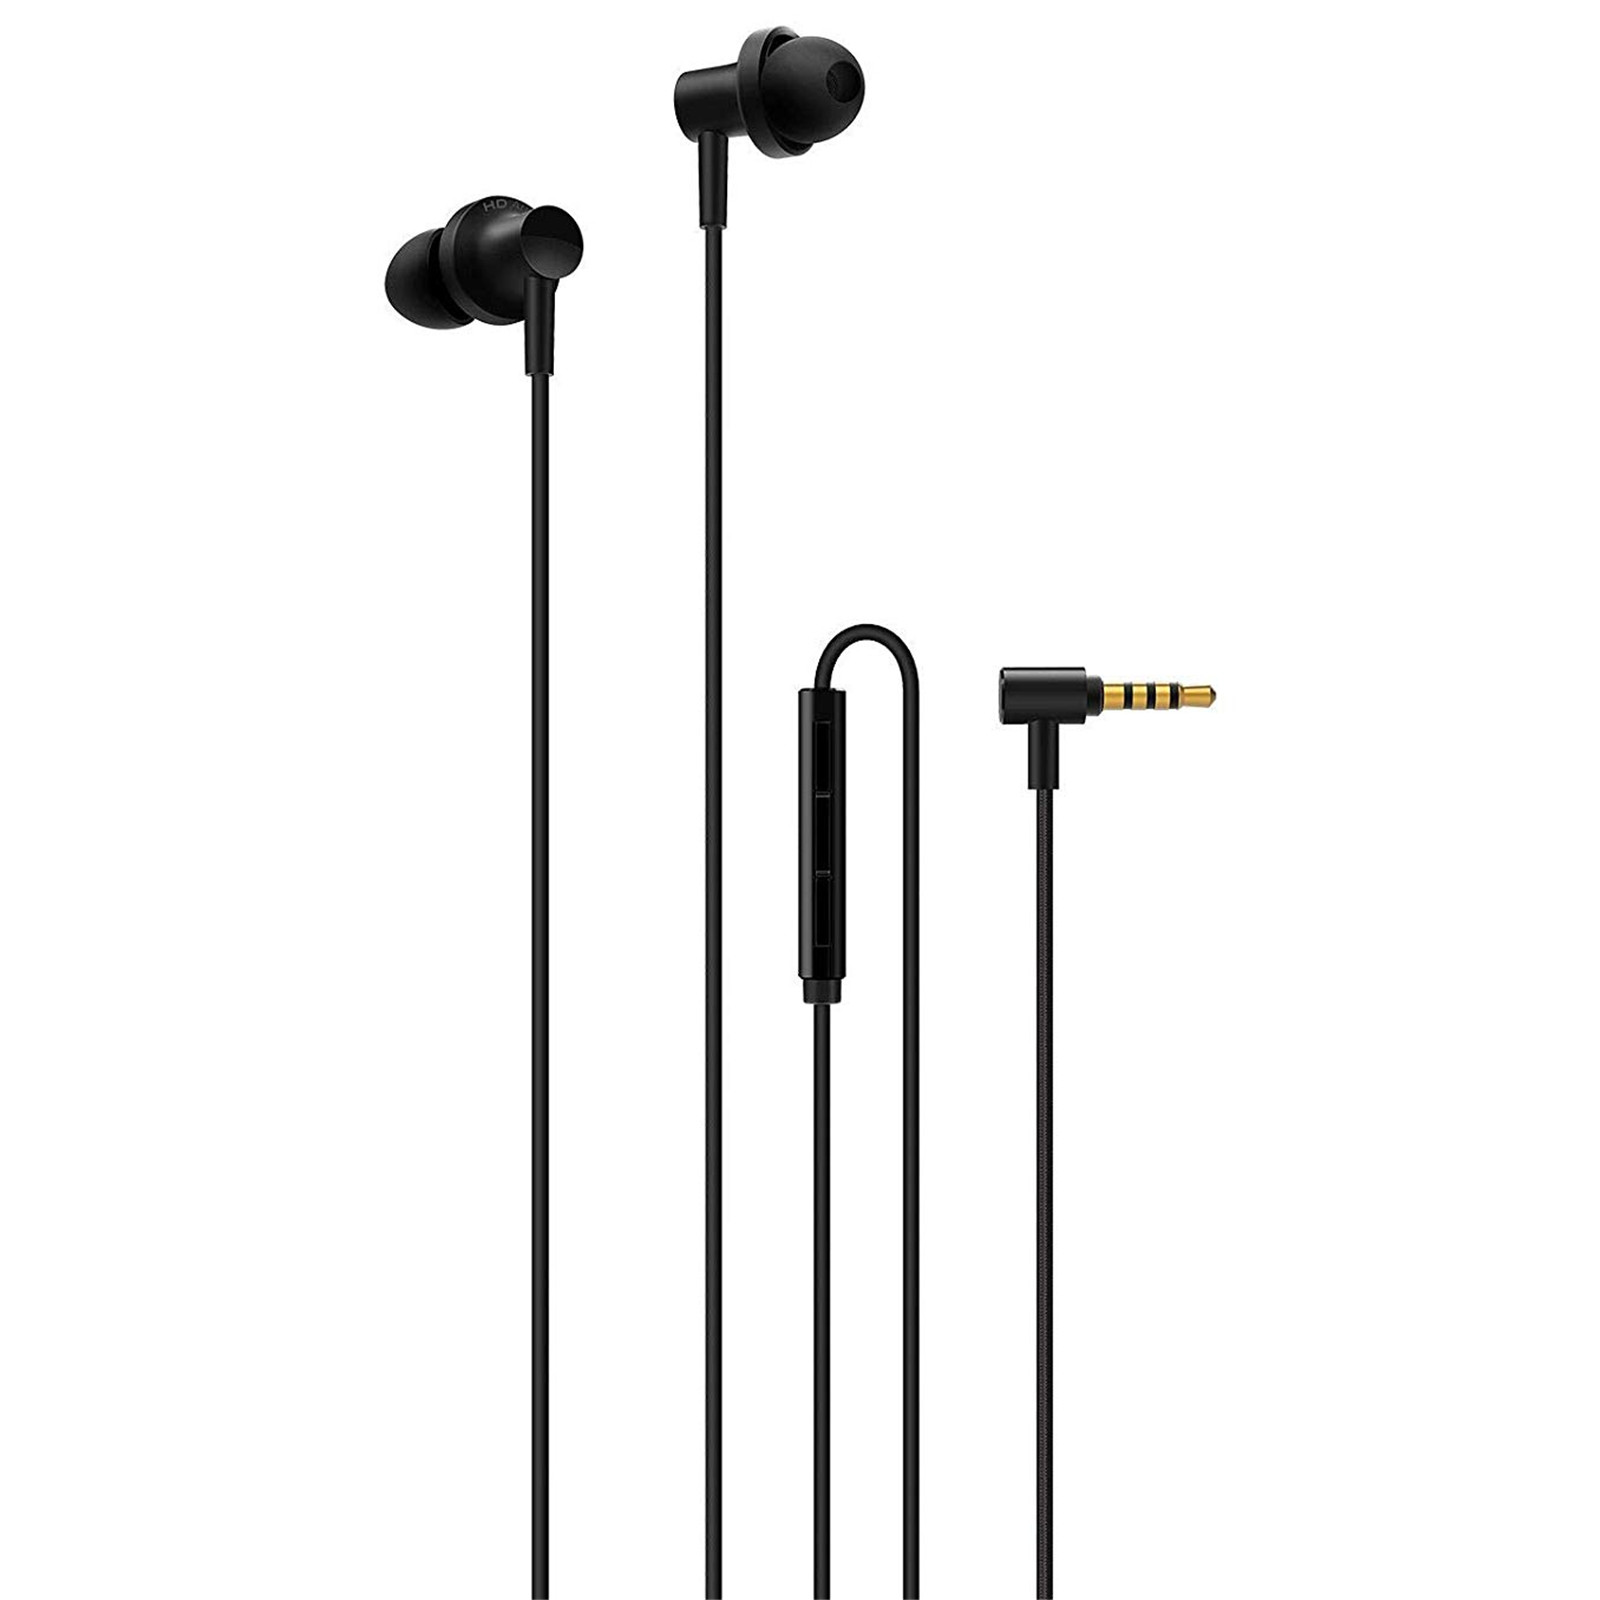 Xiaomi Mi In-Ear Headphones Black Pro 2 - Second generation Mi Piston / Quantie Pro earphones